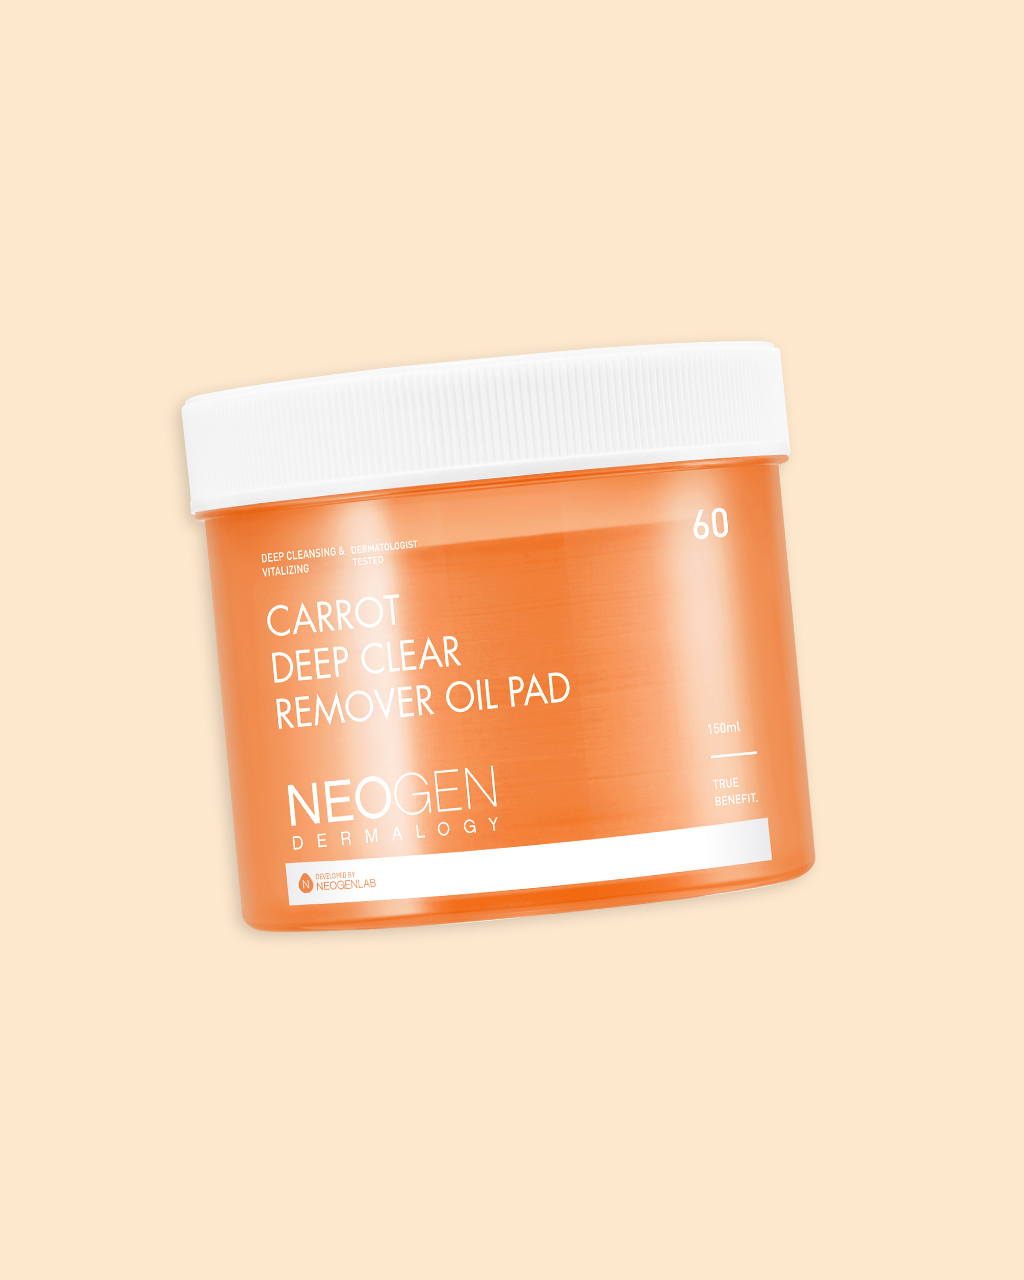 Neogen Carrot Deep Clear Remover Oil Pad